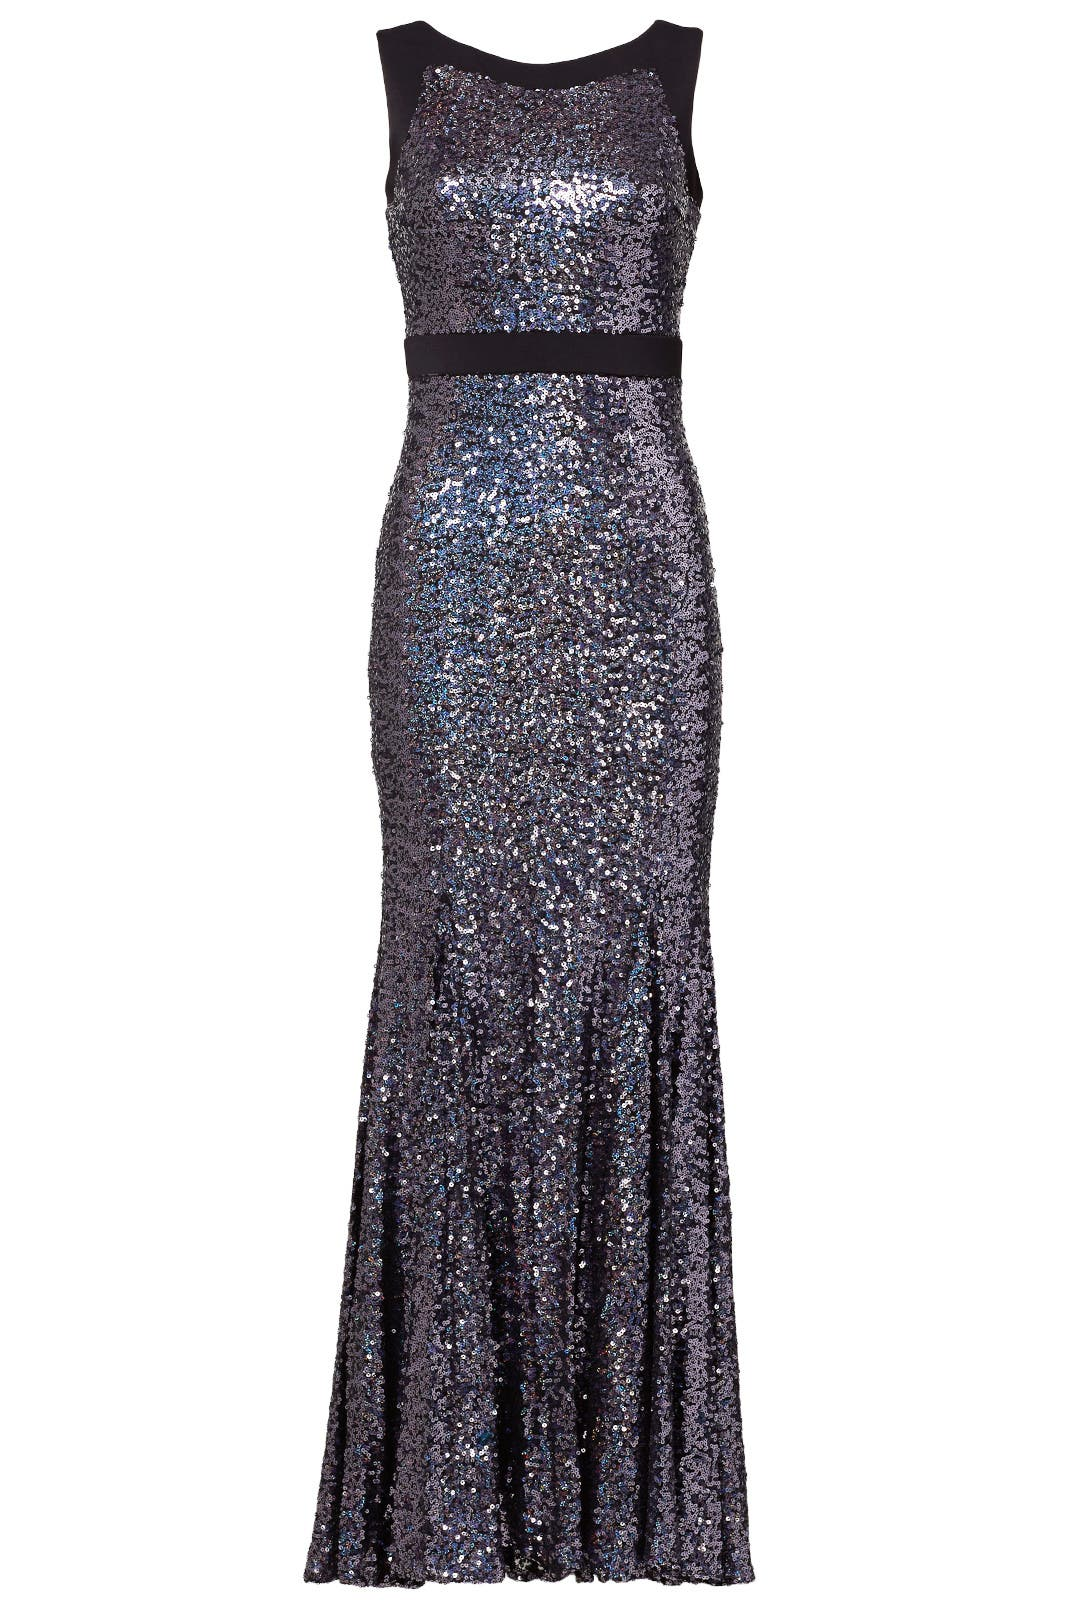 Plum Shine Gown by Badgley Mischka for $70 | Rent the Runway